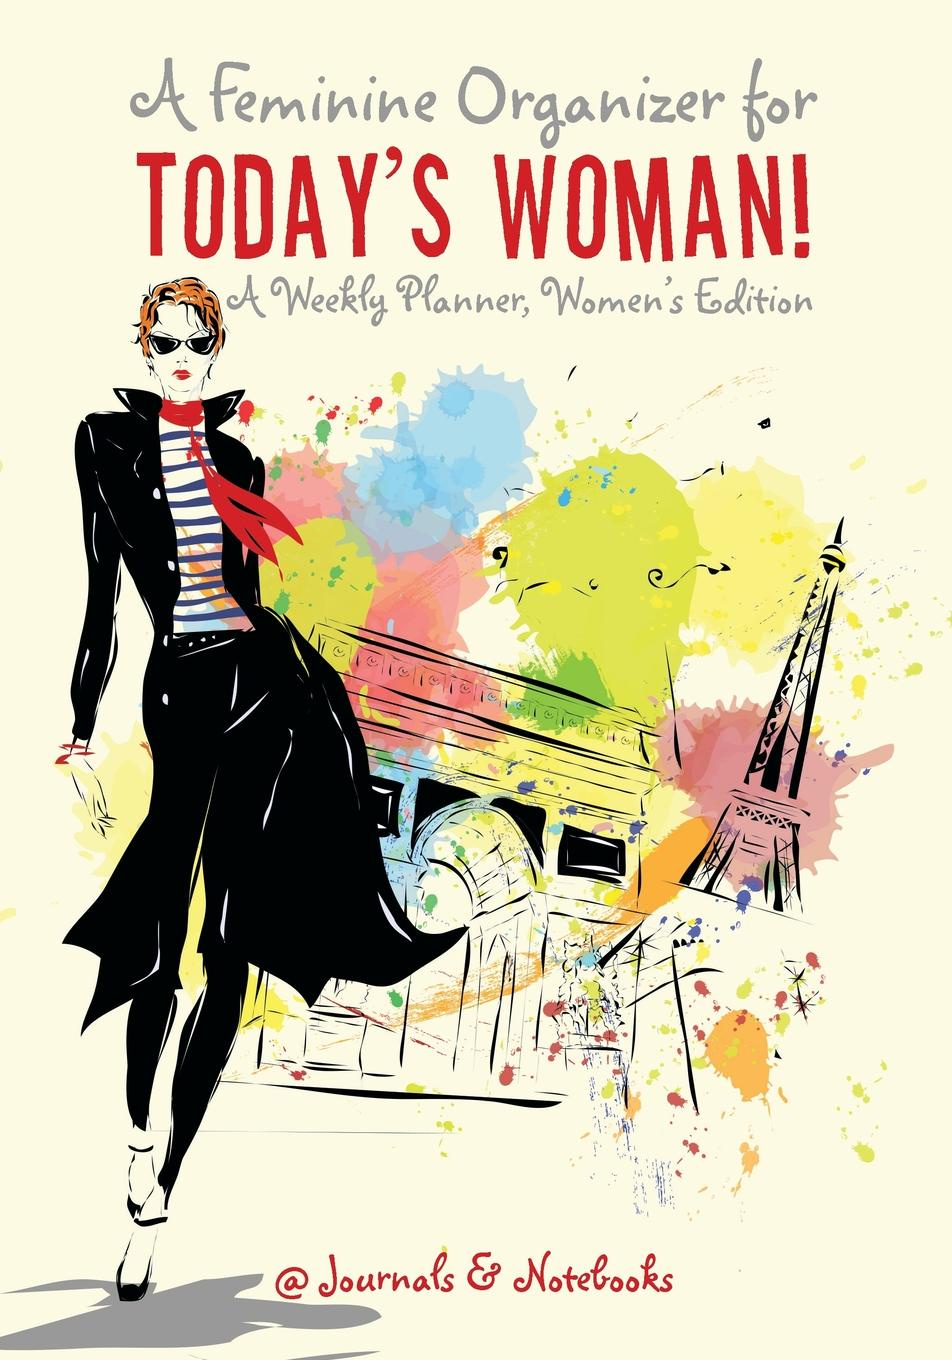 A Feminine Organizer for Today's Woman! A Weekly Planner, Women's Edition A woman needs all the help she needs as she puts on her many hats...